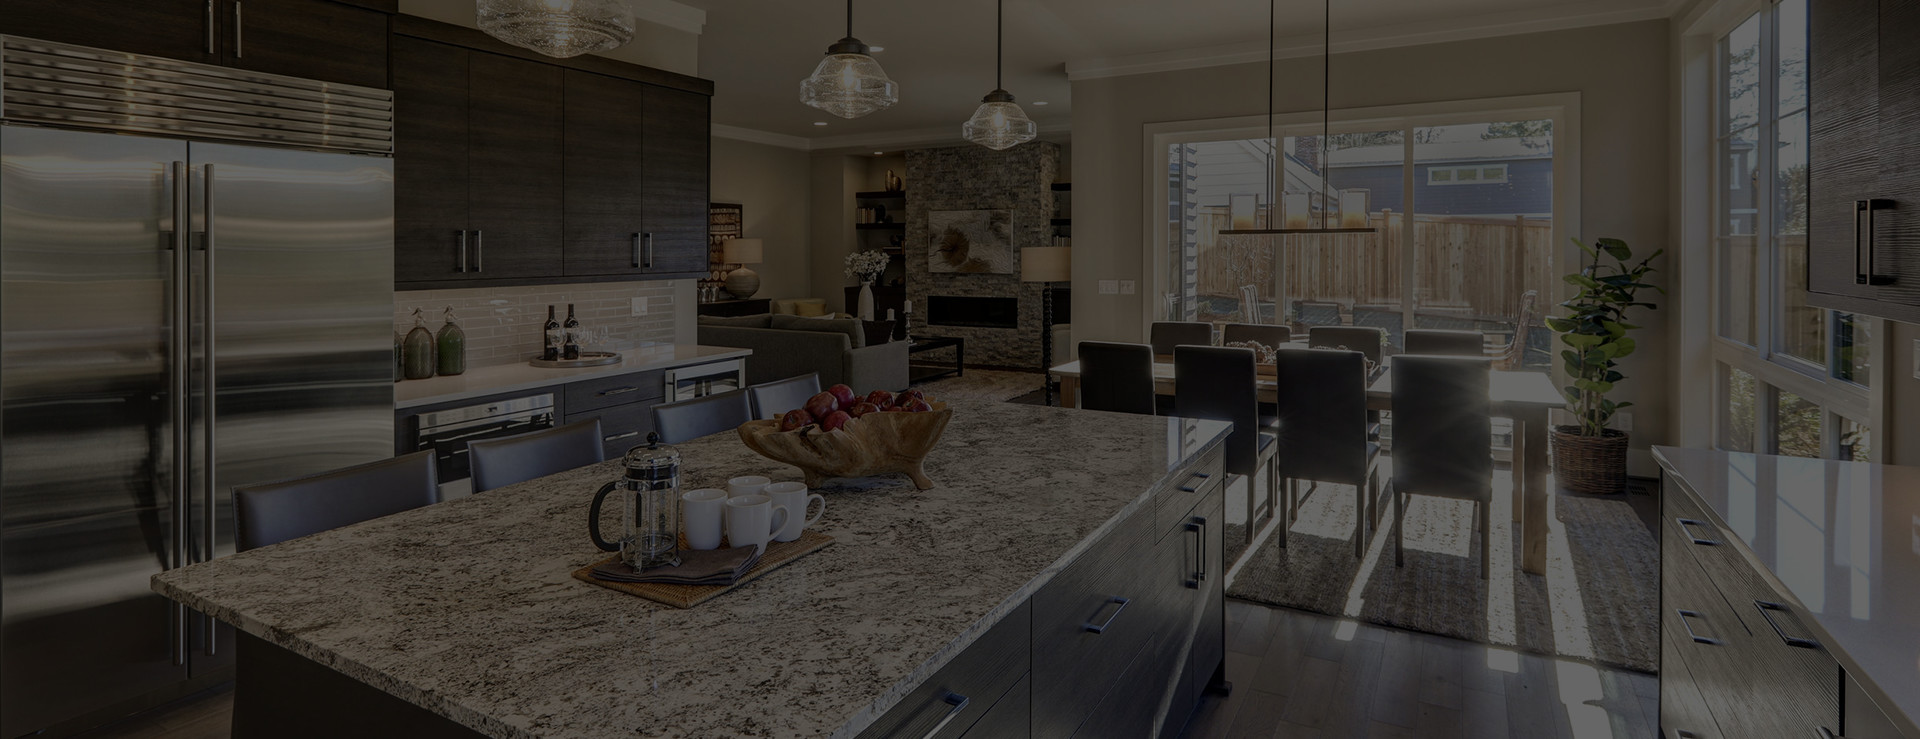 Home renovations in Essex